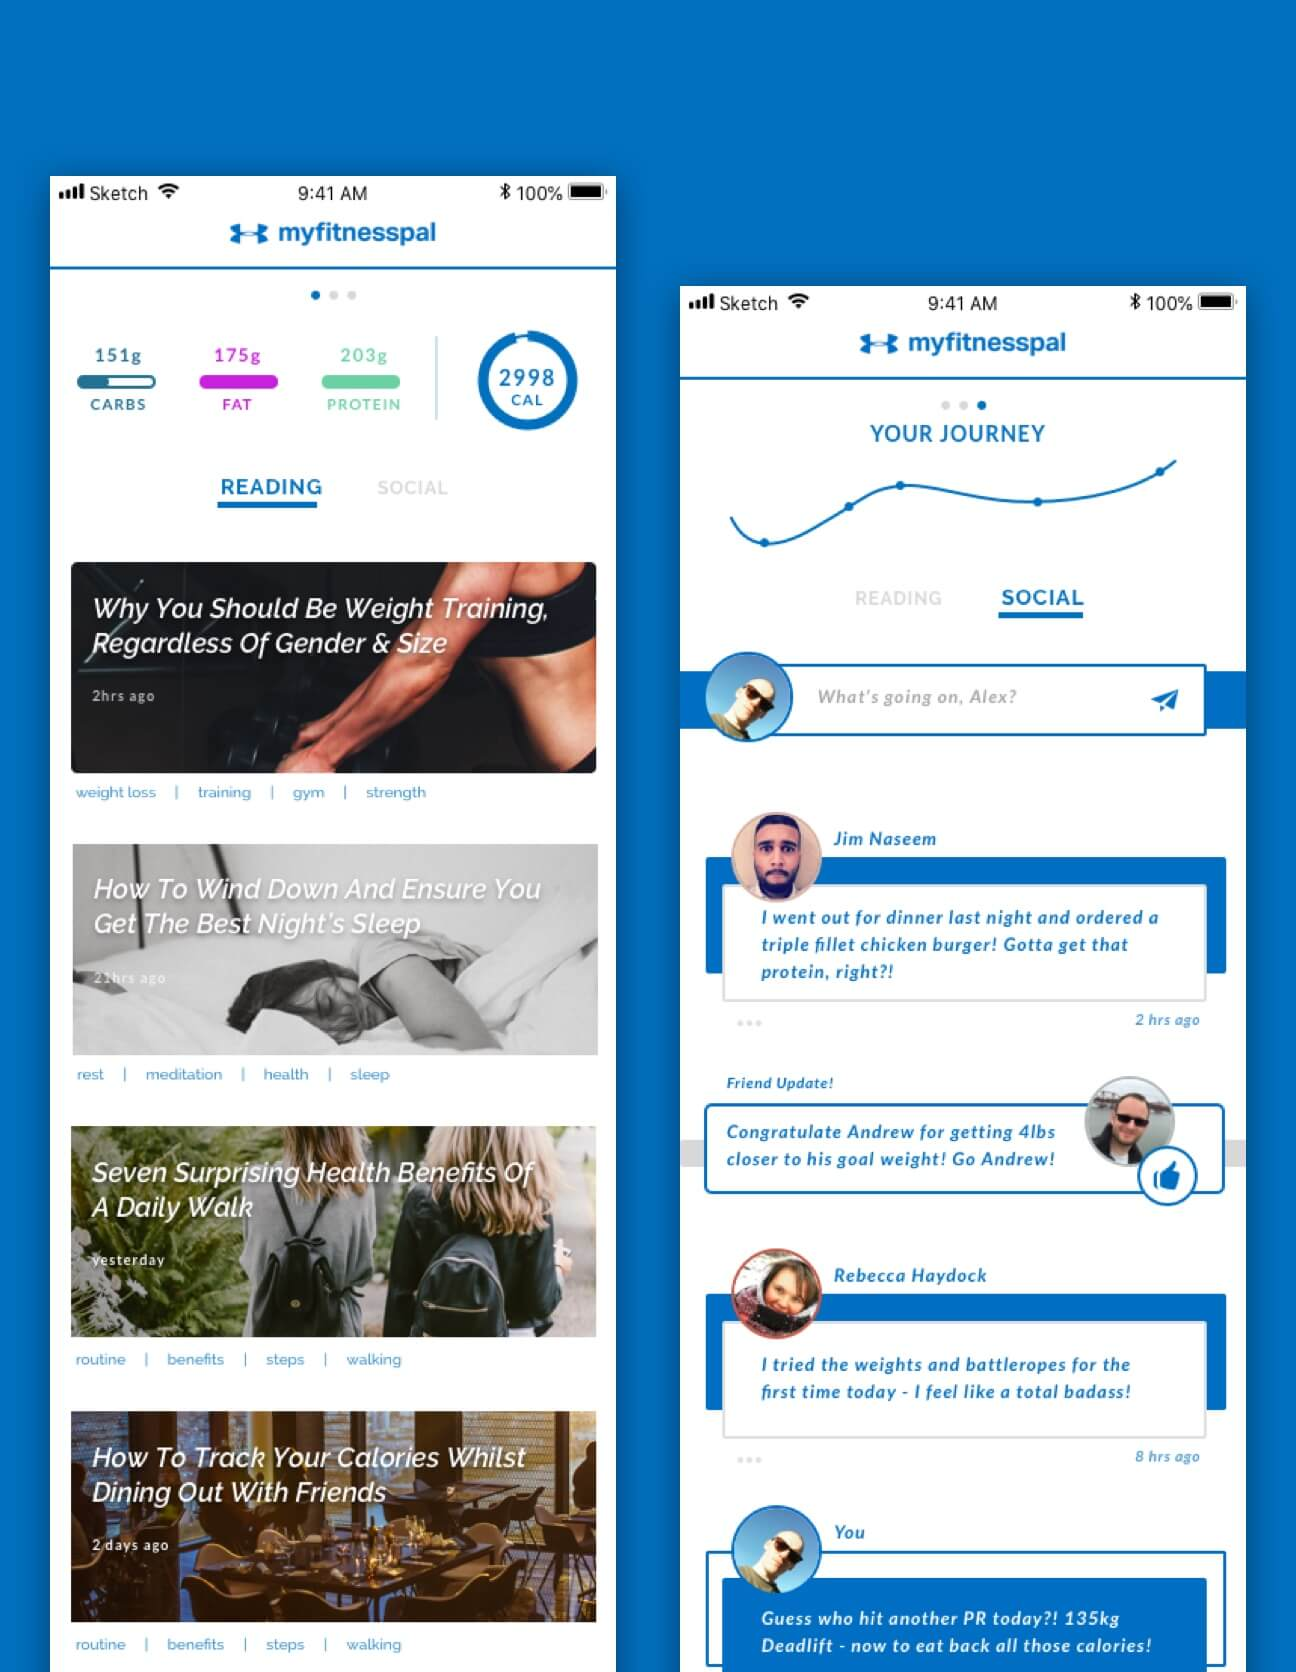 Designs for the social and article feeds for the app